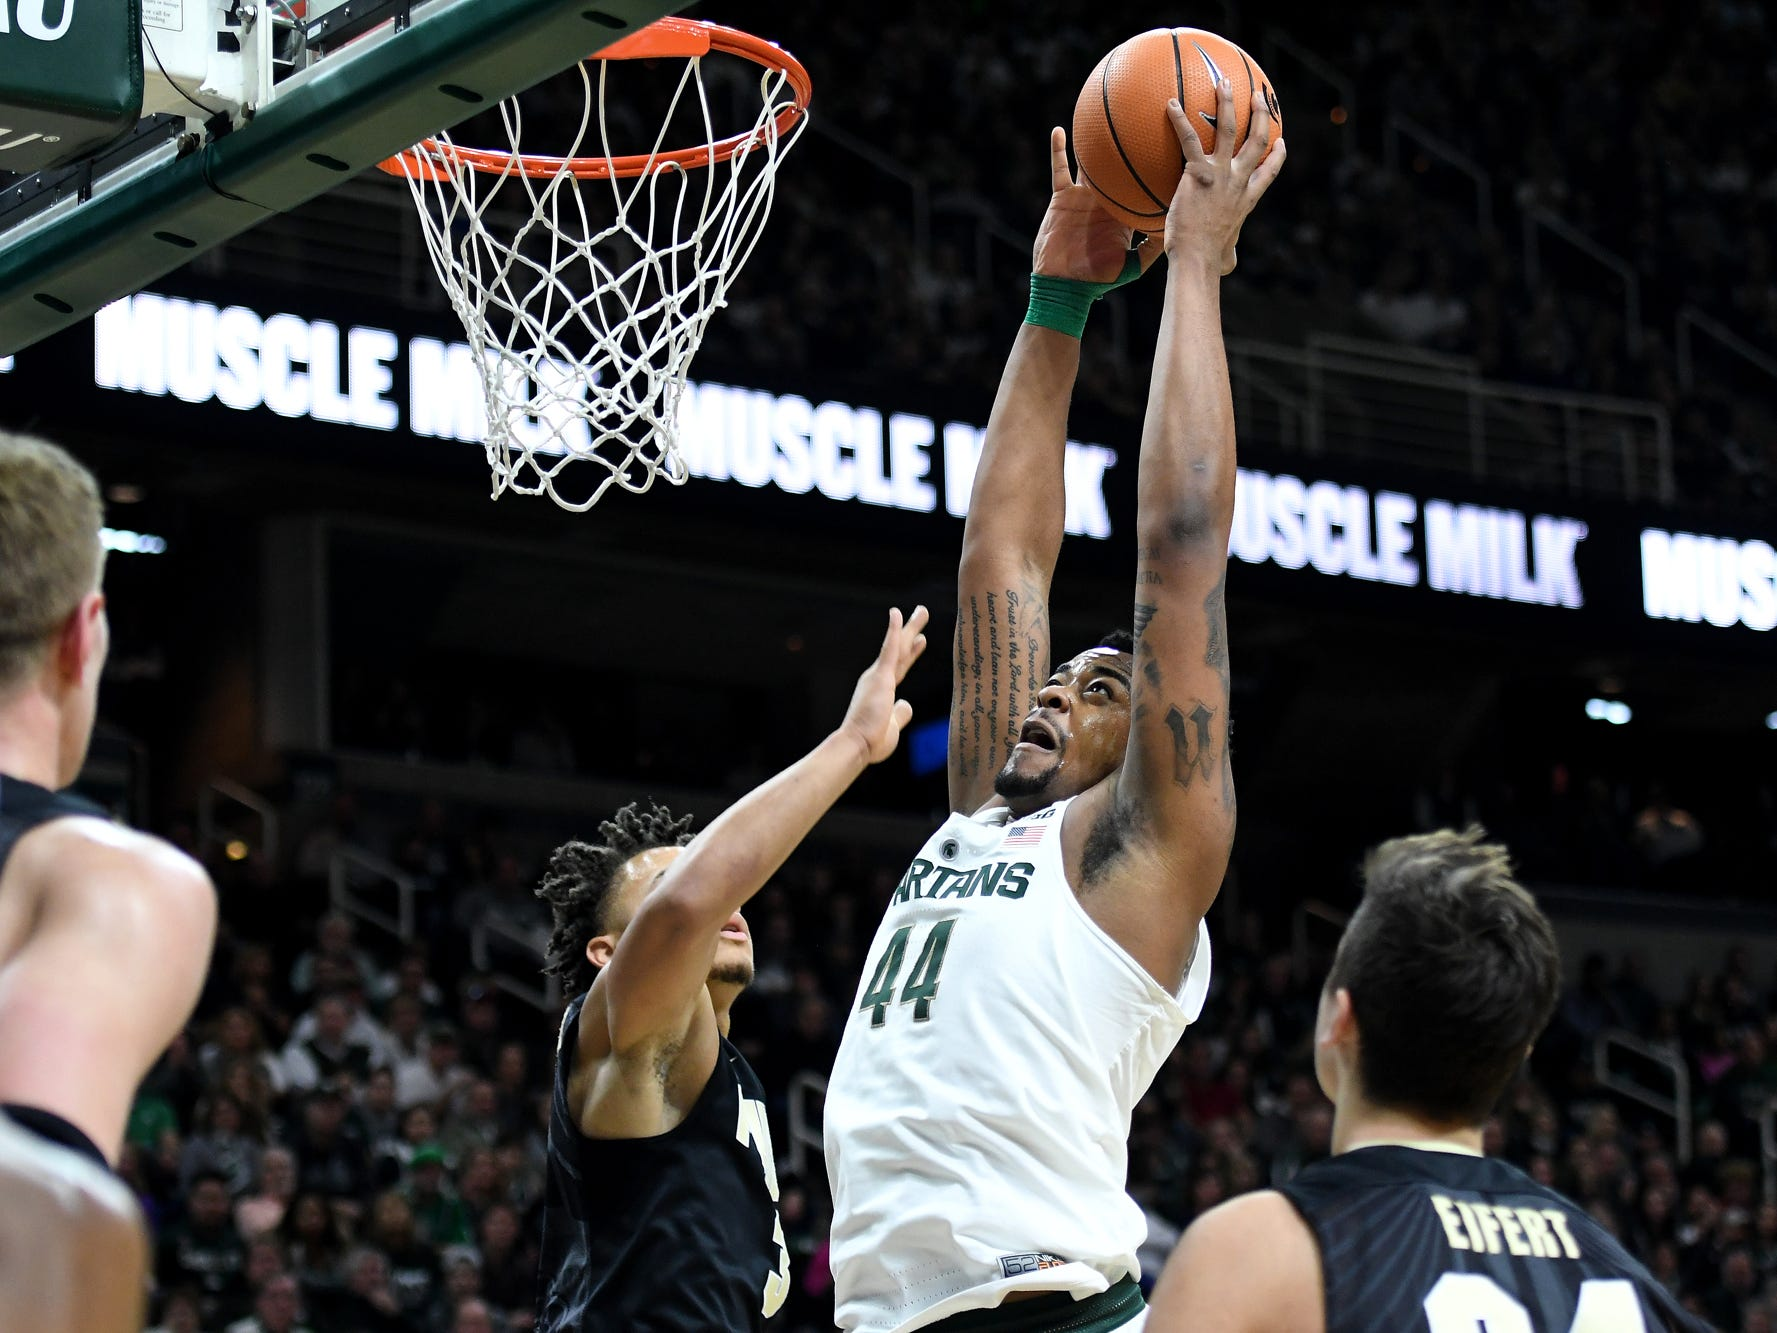 Michigan State's Nick Ward, right, dunks over Purdue's Carsen Edwards during the first half on Saturday, Feb. 10, 2018, at the Breslin Center in East Lansing.